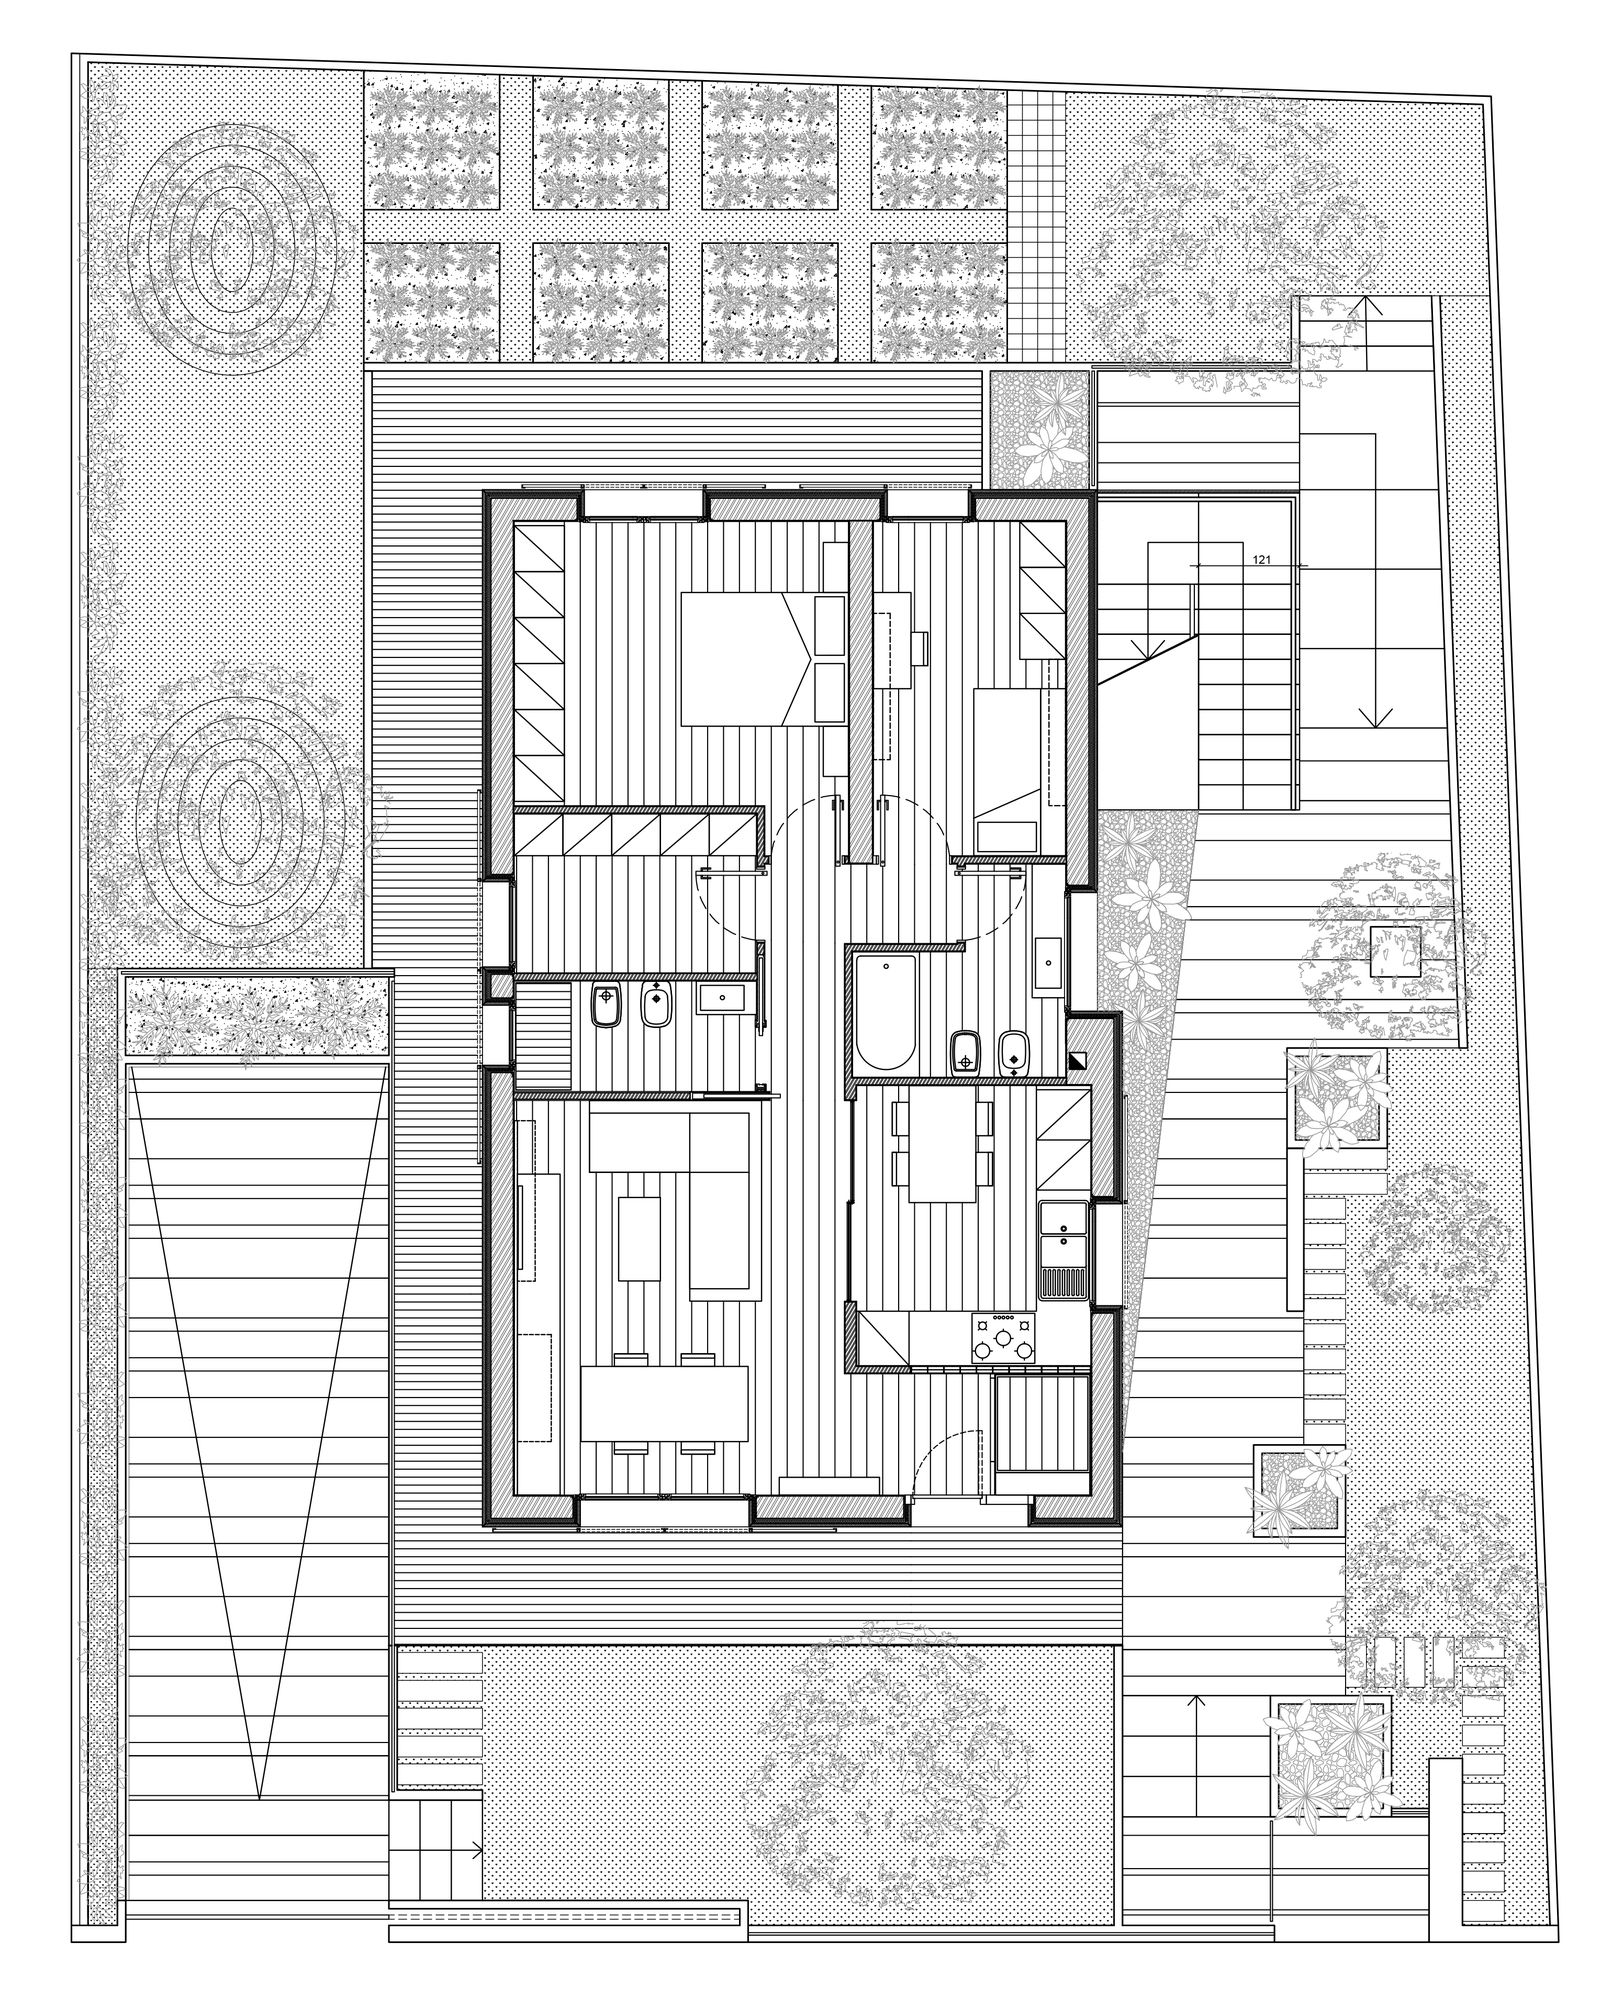 Adorable Huse Floor Plan With One Bedroom and Family Room also Kitchen